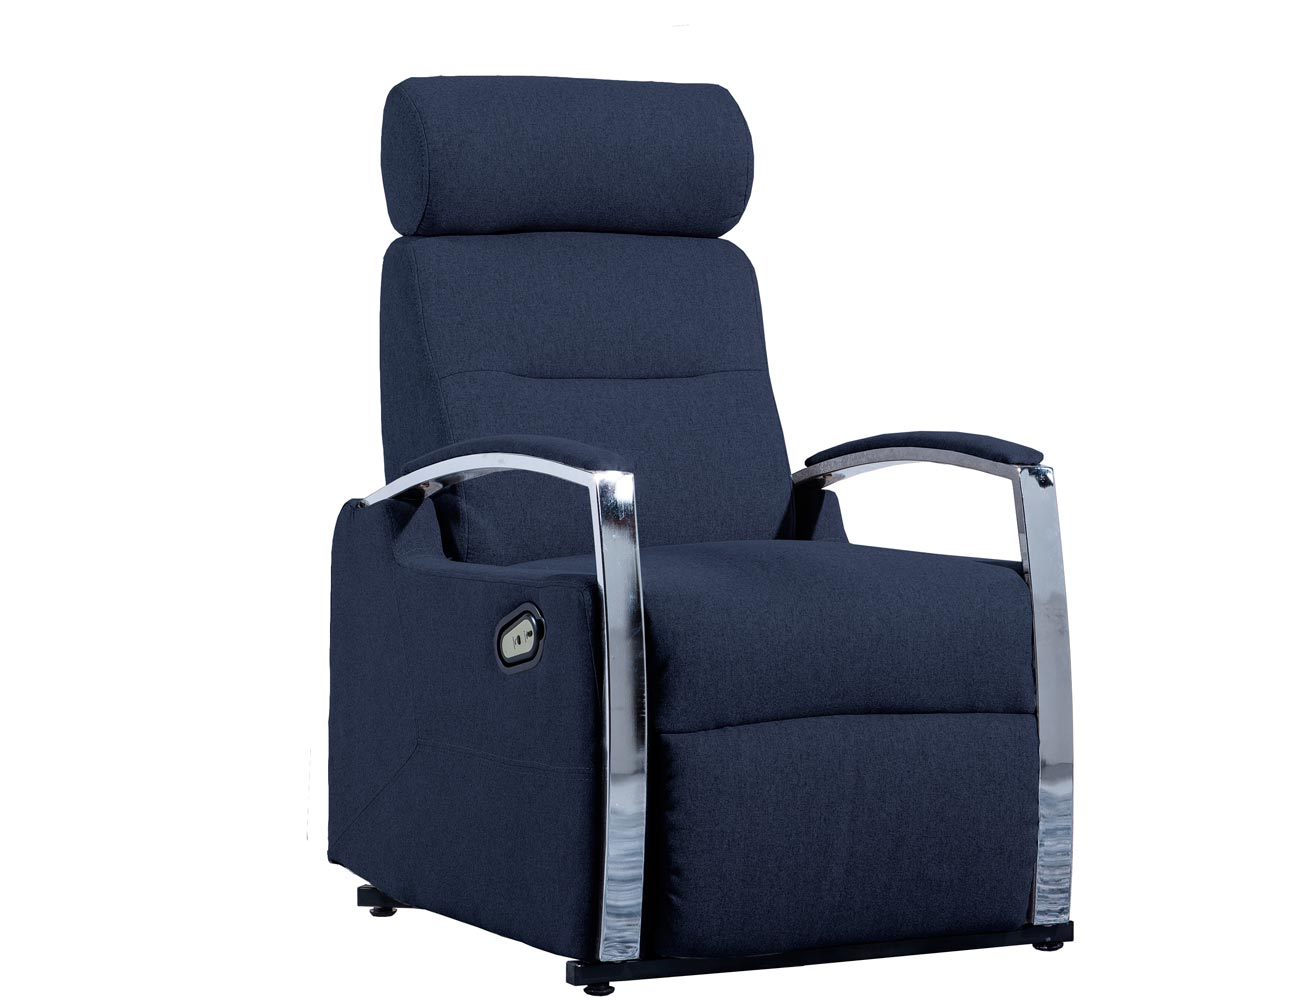 Sillon relax levanta personas power lift marengo